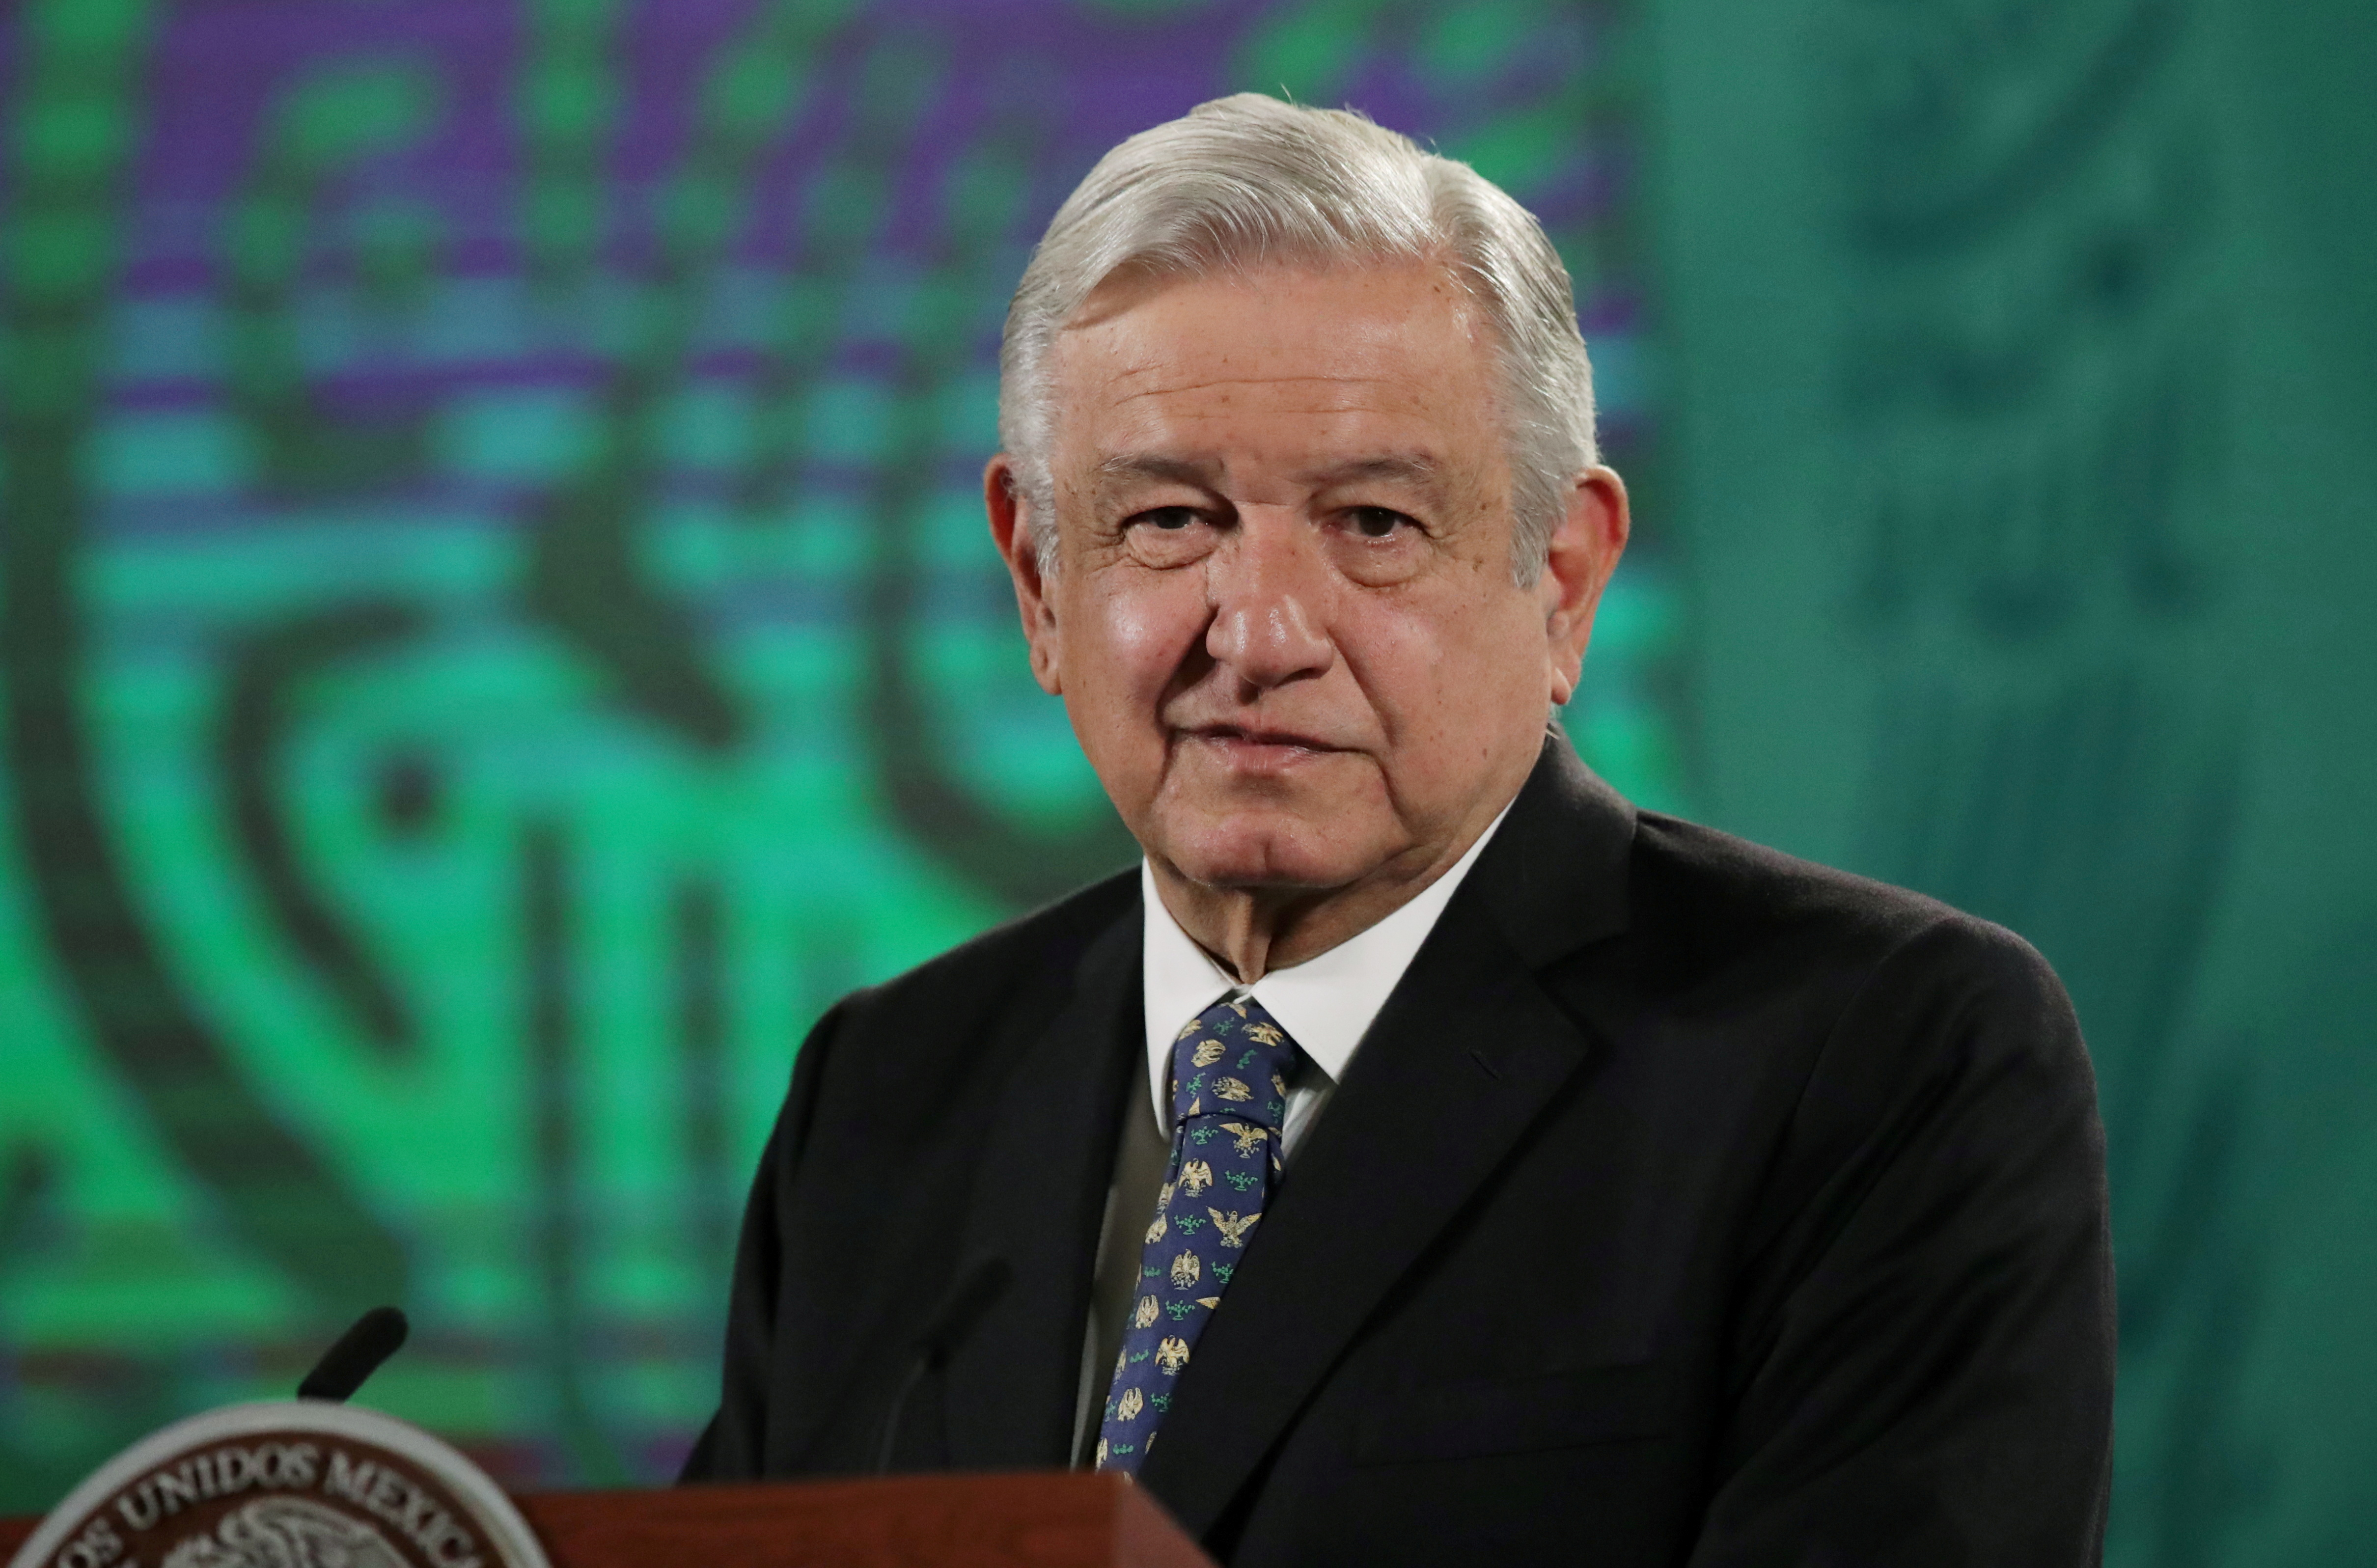 Mexico's President Andres Manuel Lopez Obrador holds a news conference at the National Palace in Mexico City, Mexico, May 5, 2021. REUTERS/Henry Romero/File Photo